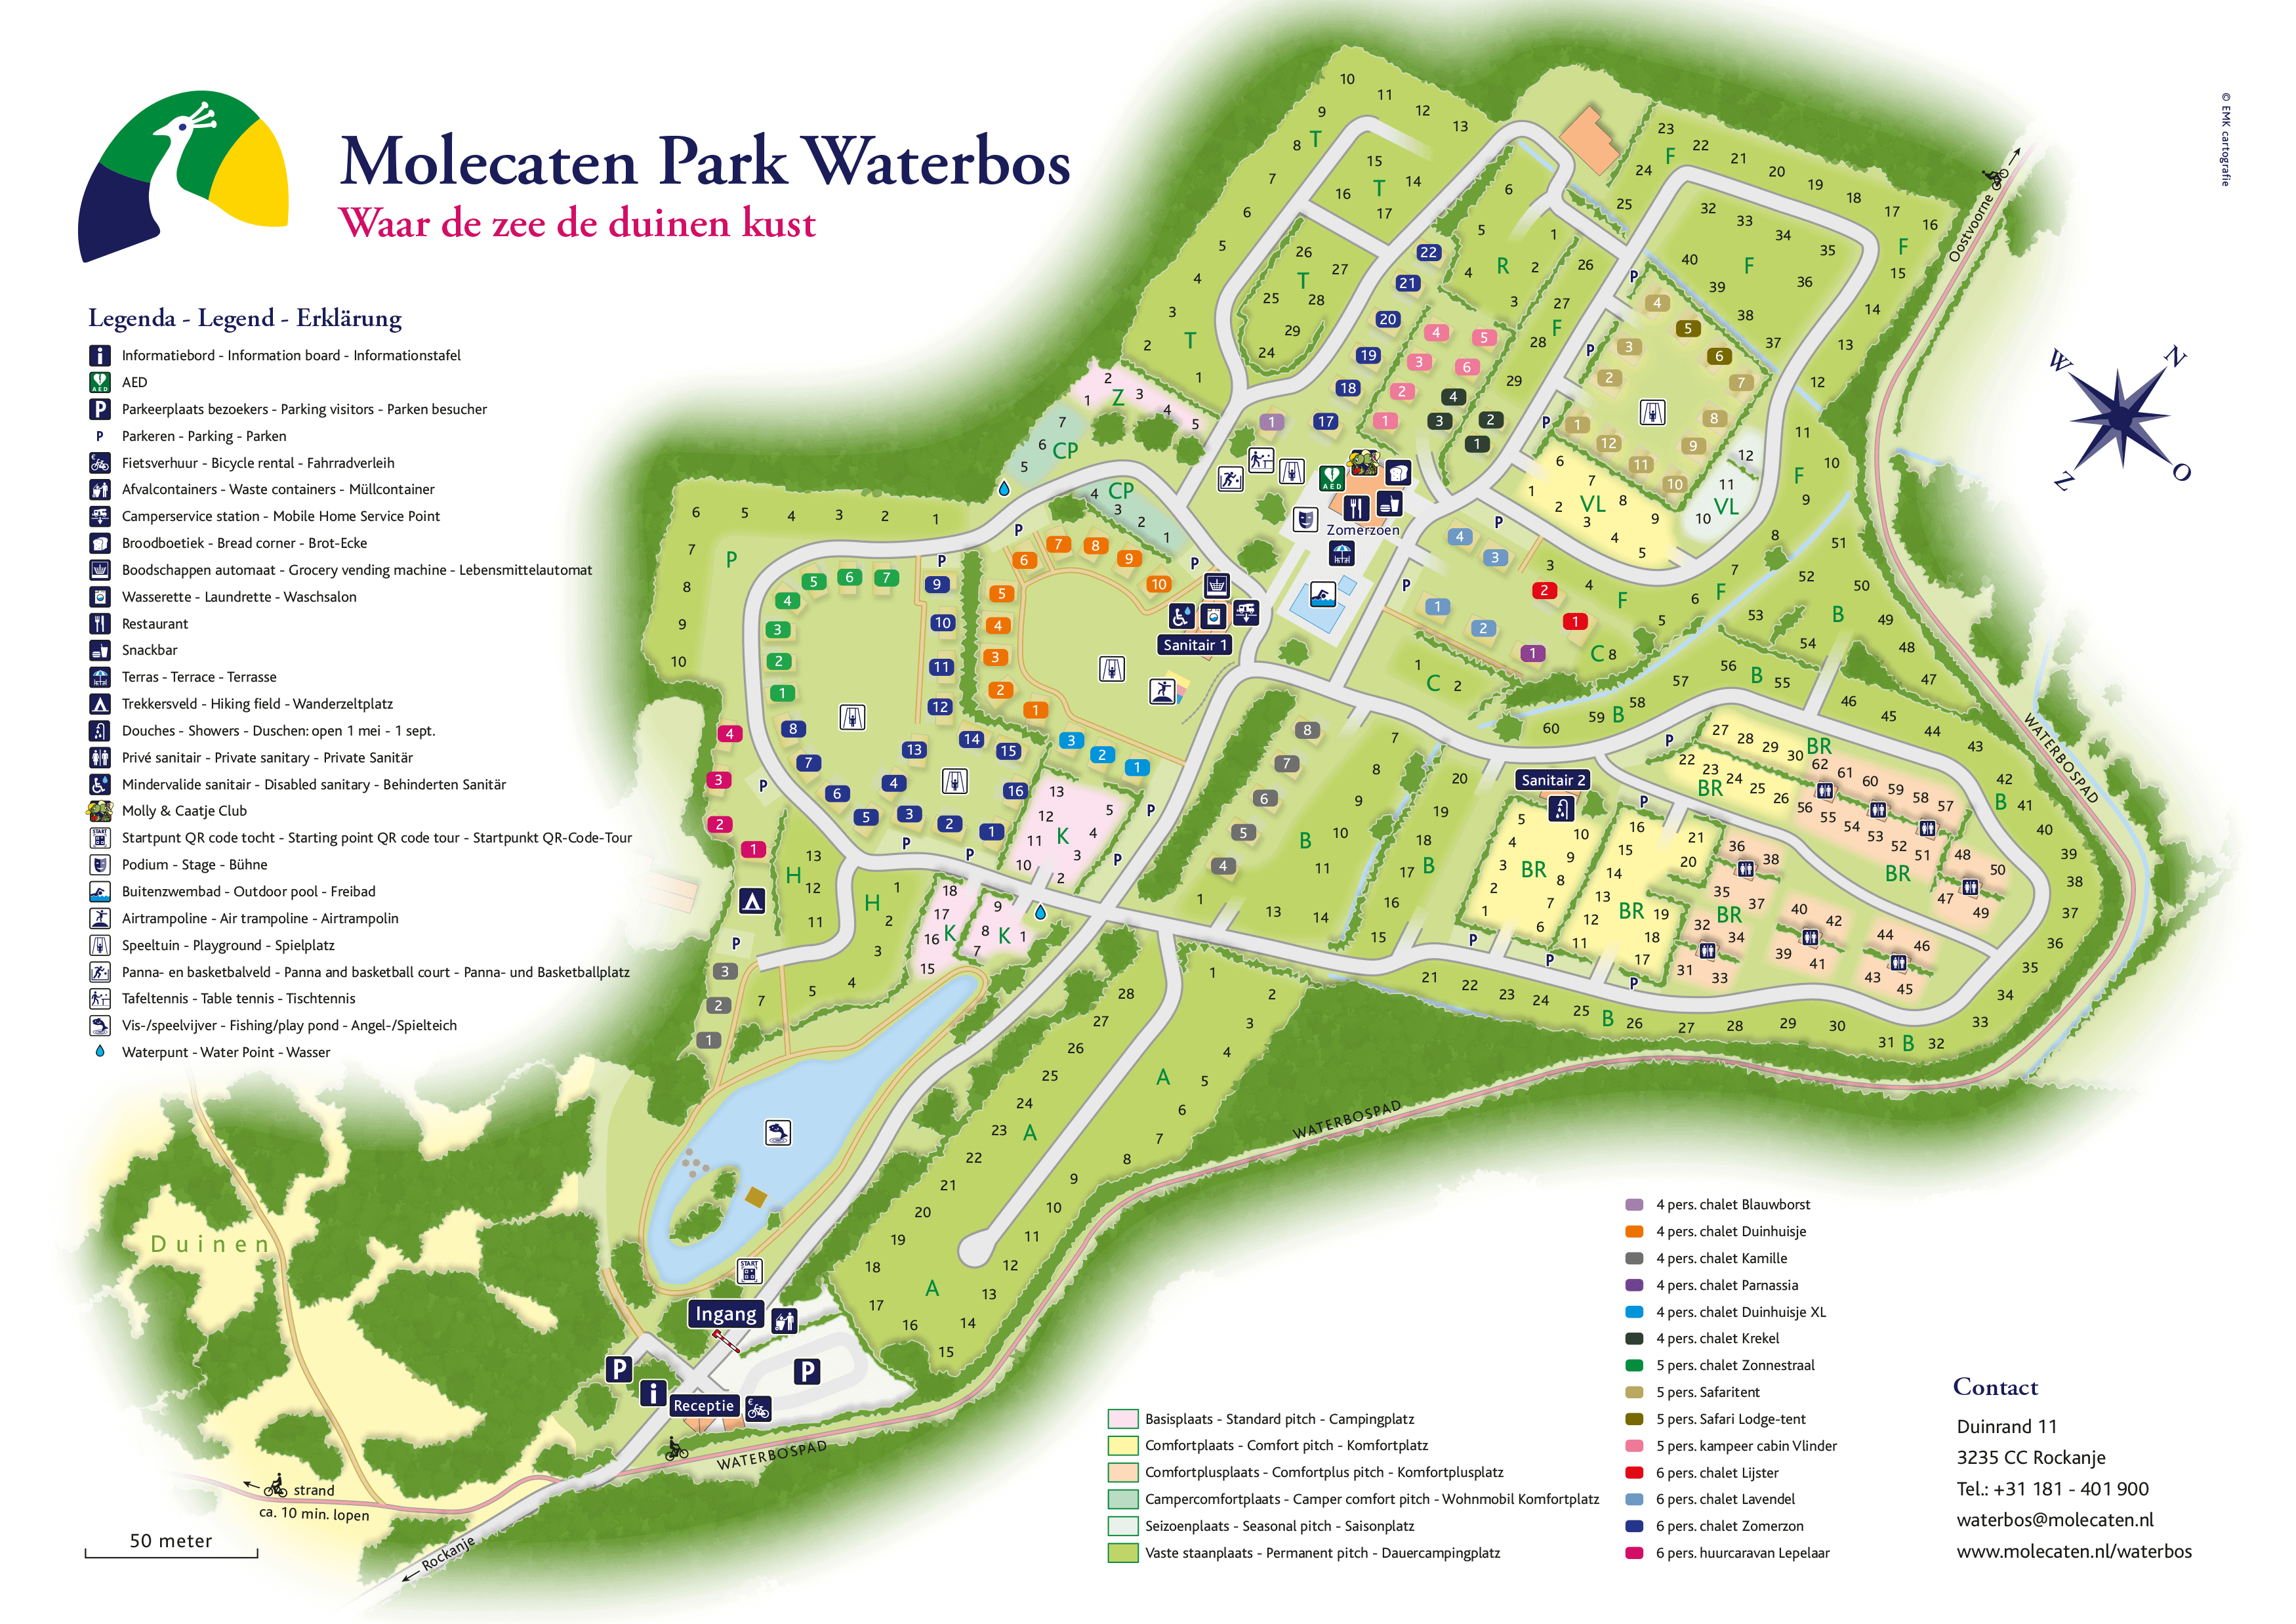 Molecaten Park Waterbos accommodation.parkmap.alttext